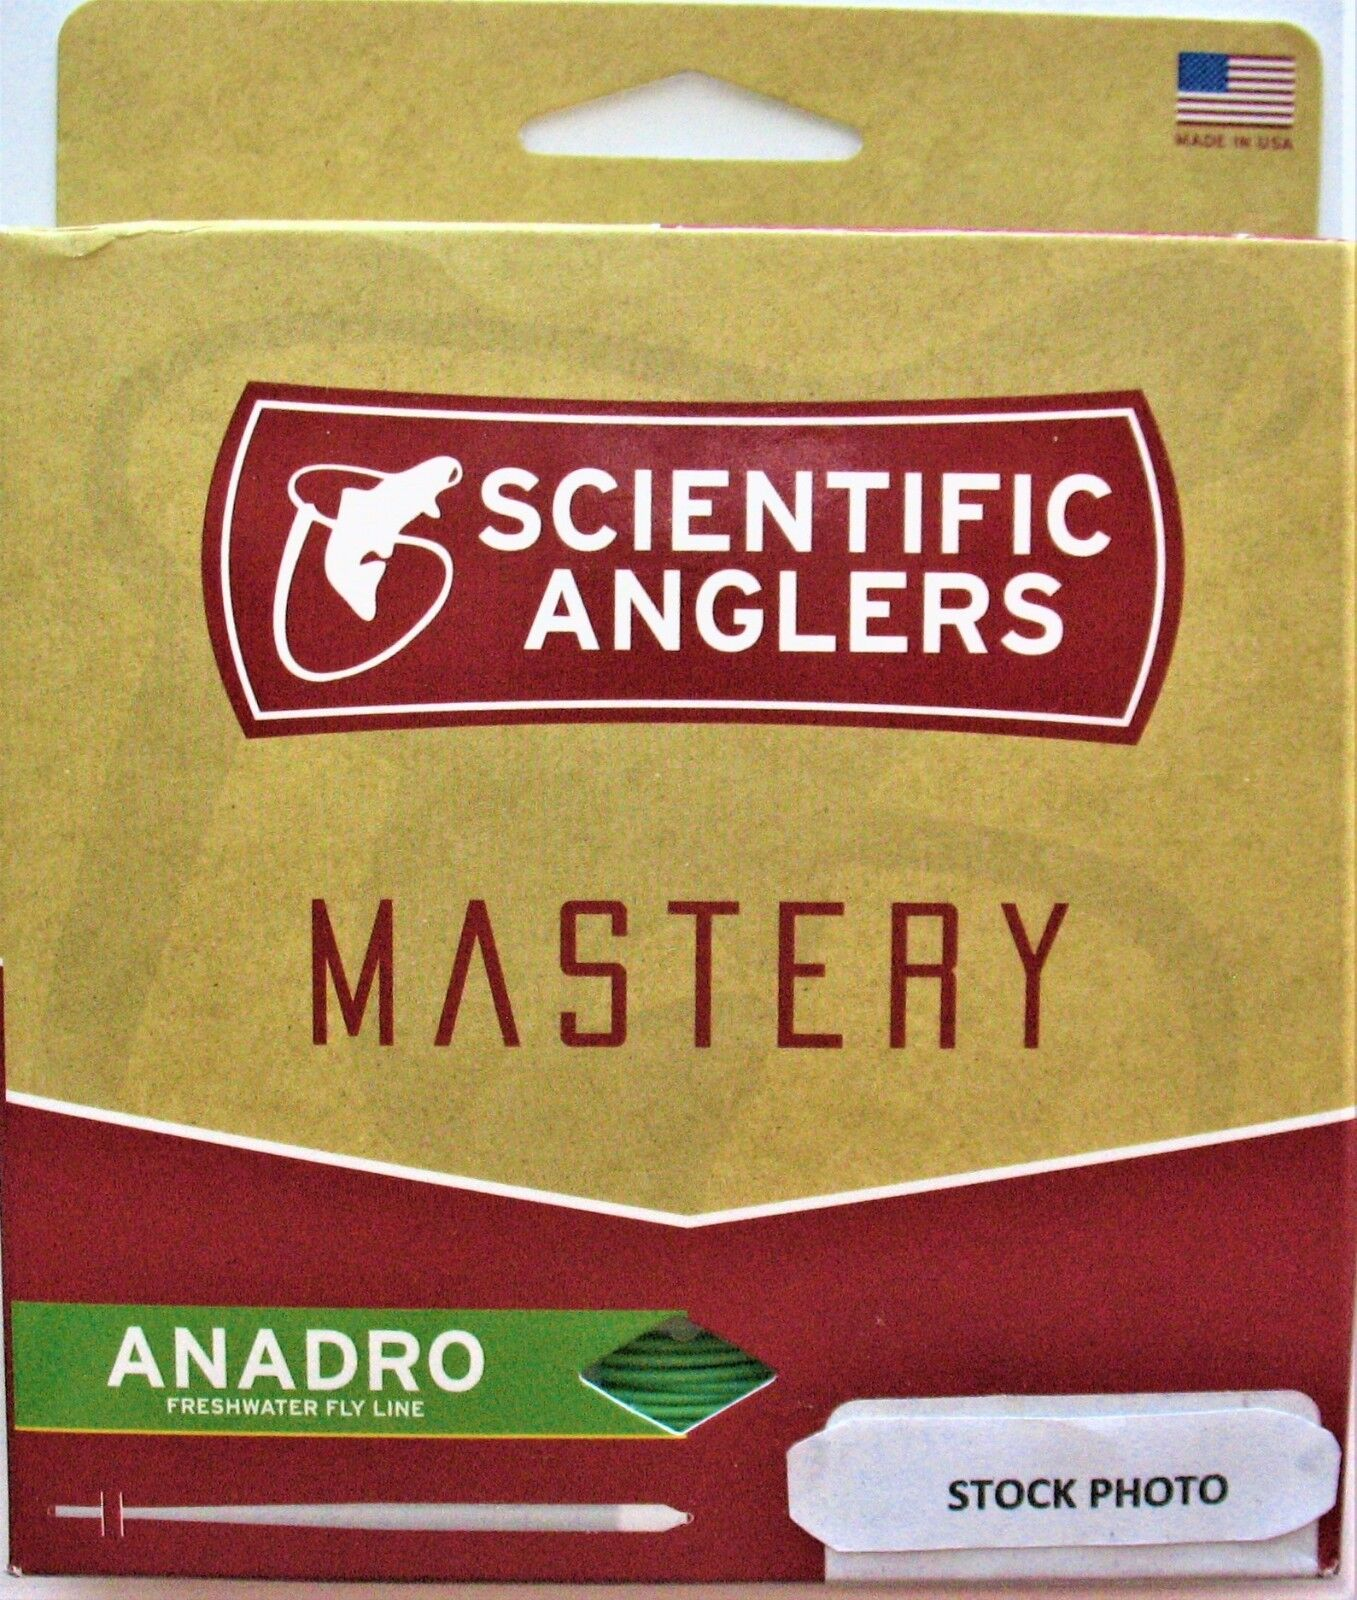 SCIENTIFIC ANGLERS MASTERY ANADRO  Select Größe  FREE WARP SHIPPING  FREAKY FAST